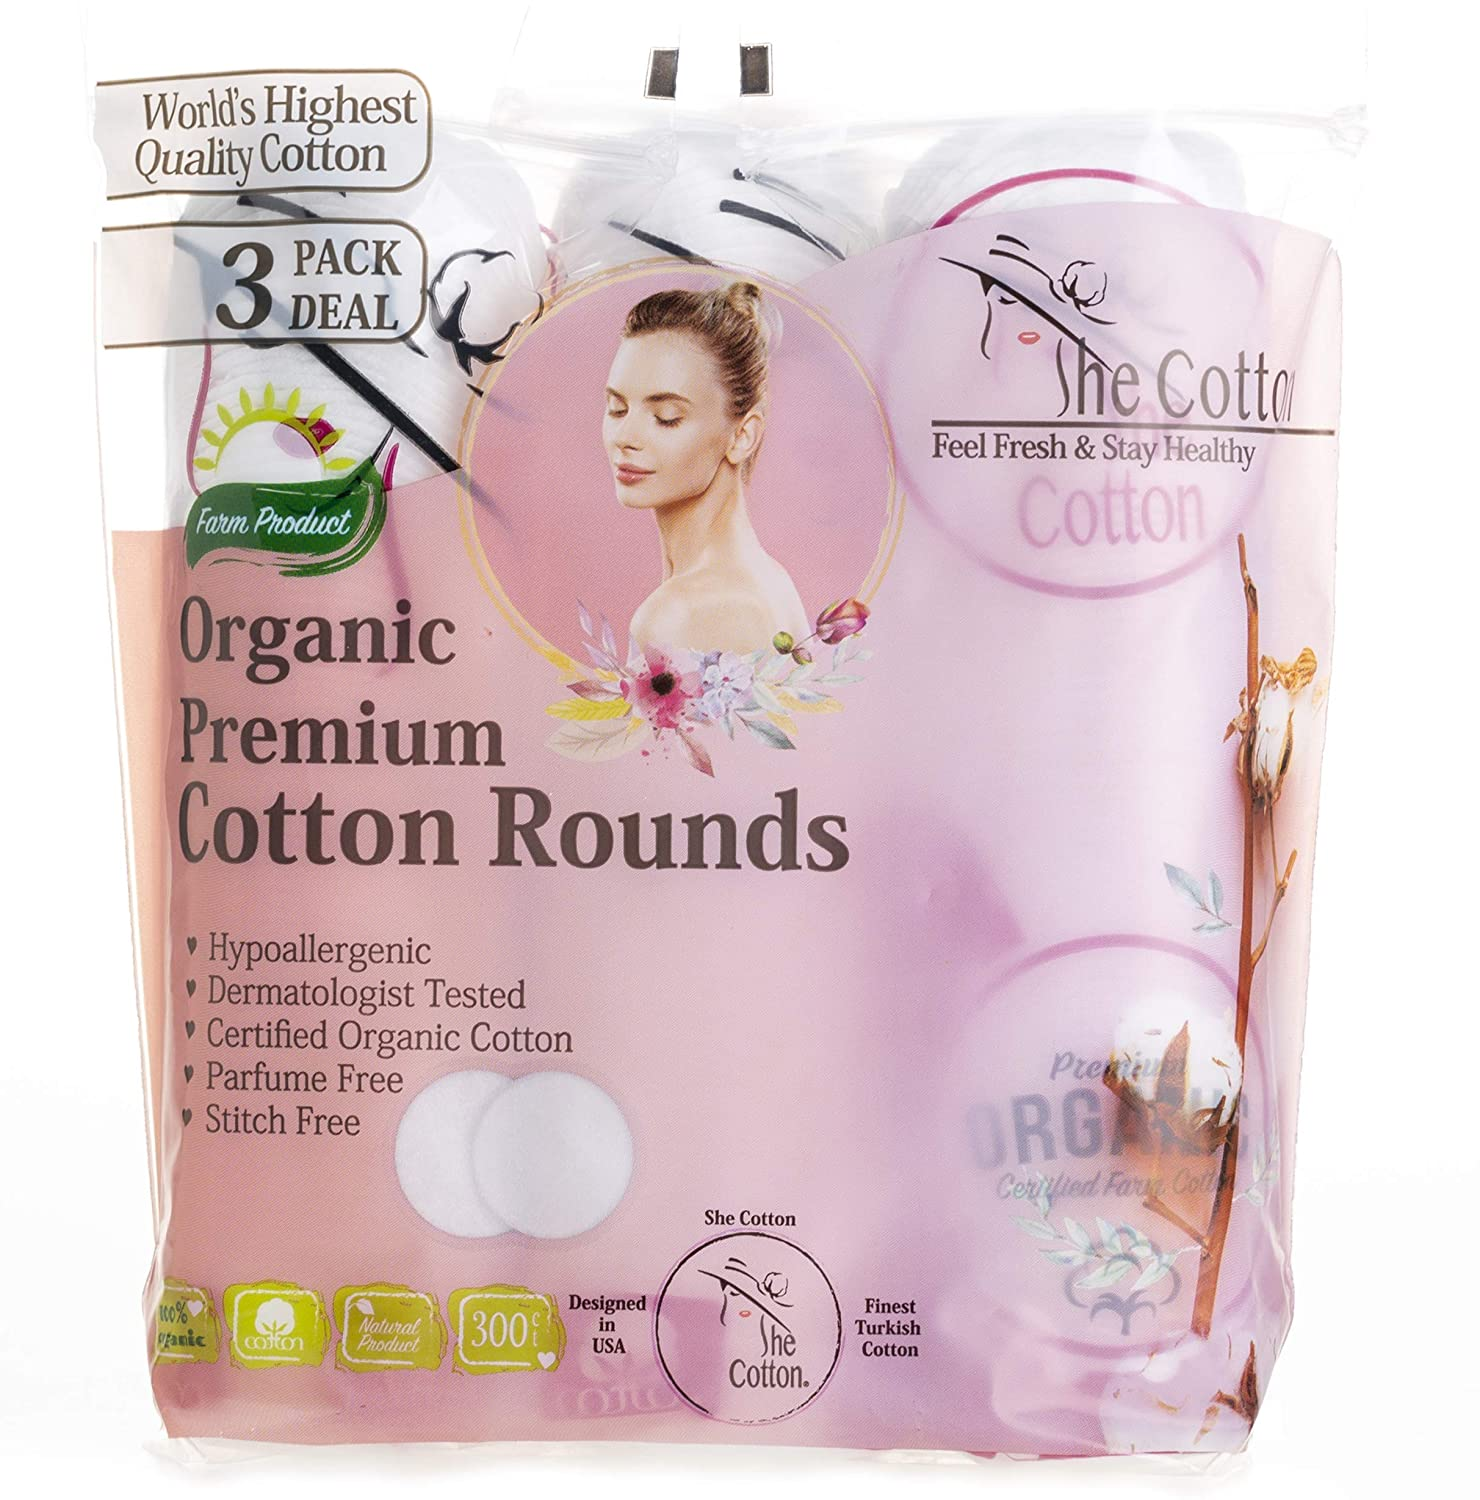 SheCotton Premium Cotton Rounds, Lint-Free Turkish Cotton Pads, Makeup-Nail Polish Remover, (3 Pack 300 Count with Extra Travel Pack)